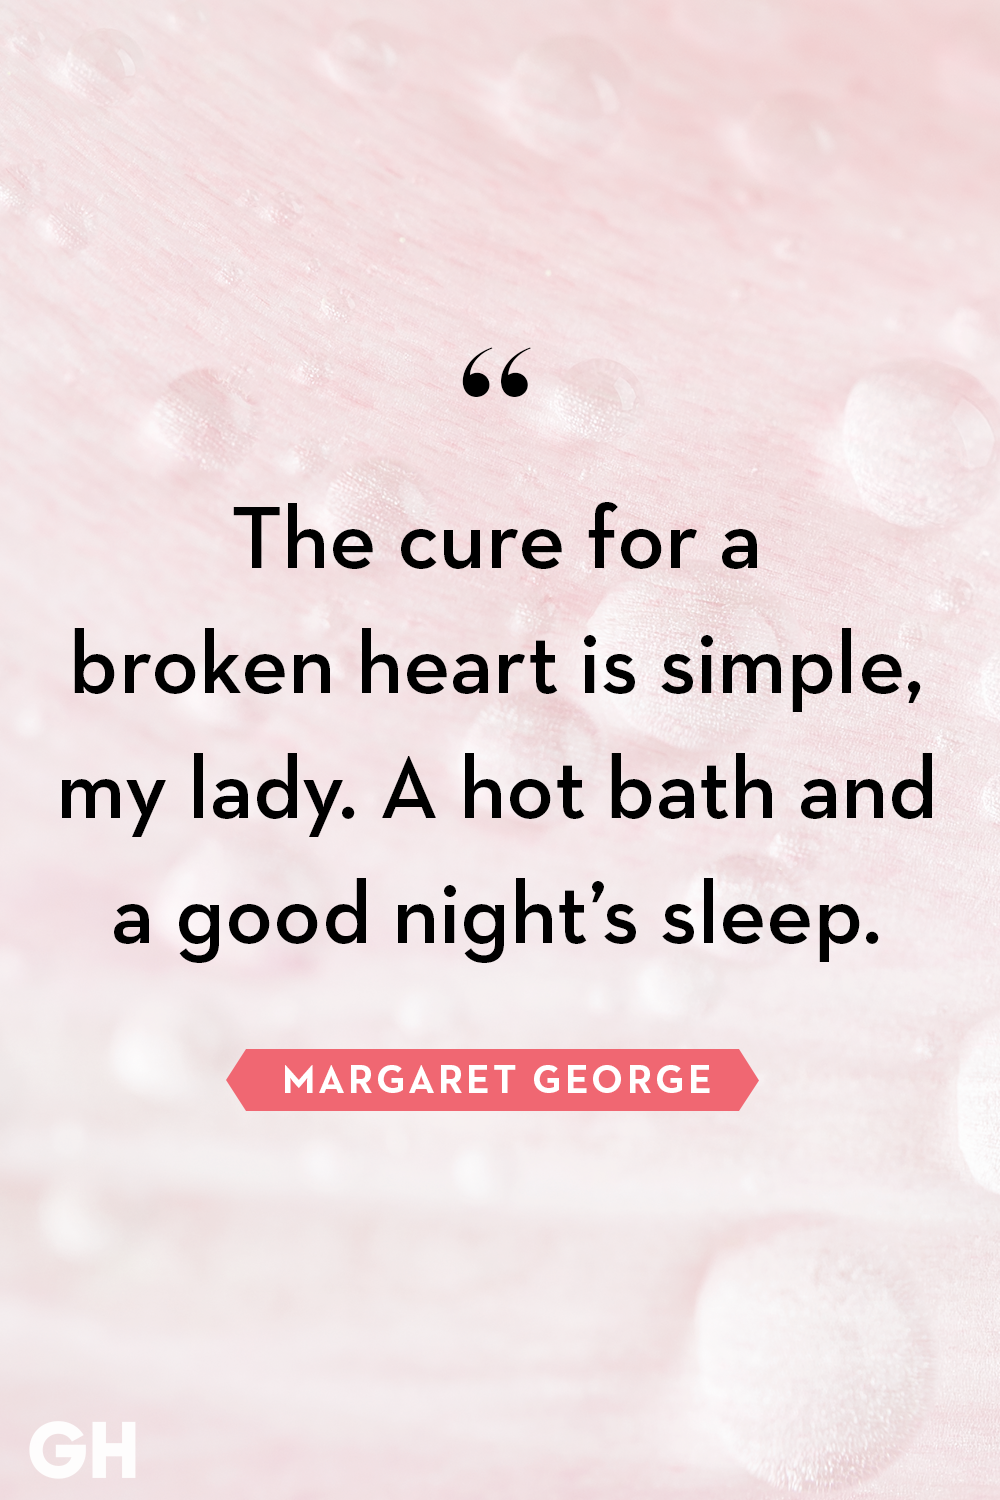 40 Quotes About Broken Hearts Wise Words About Heartbreak